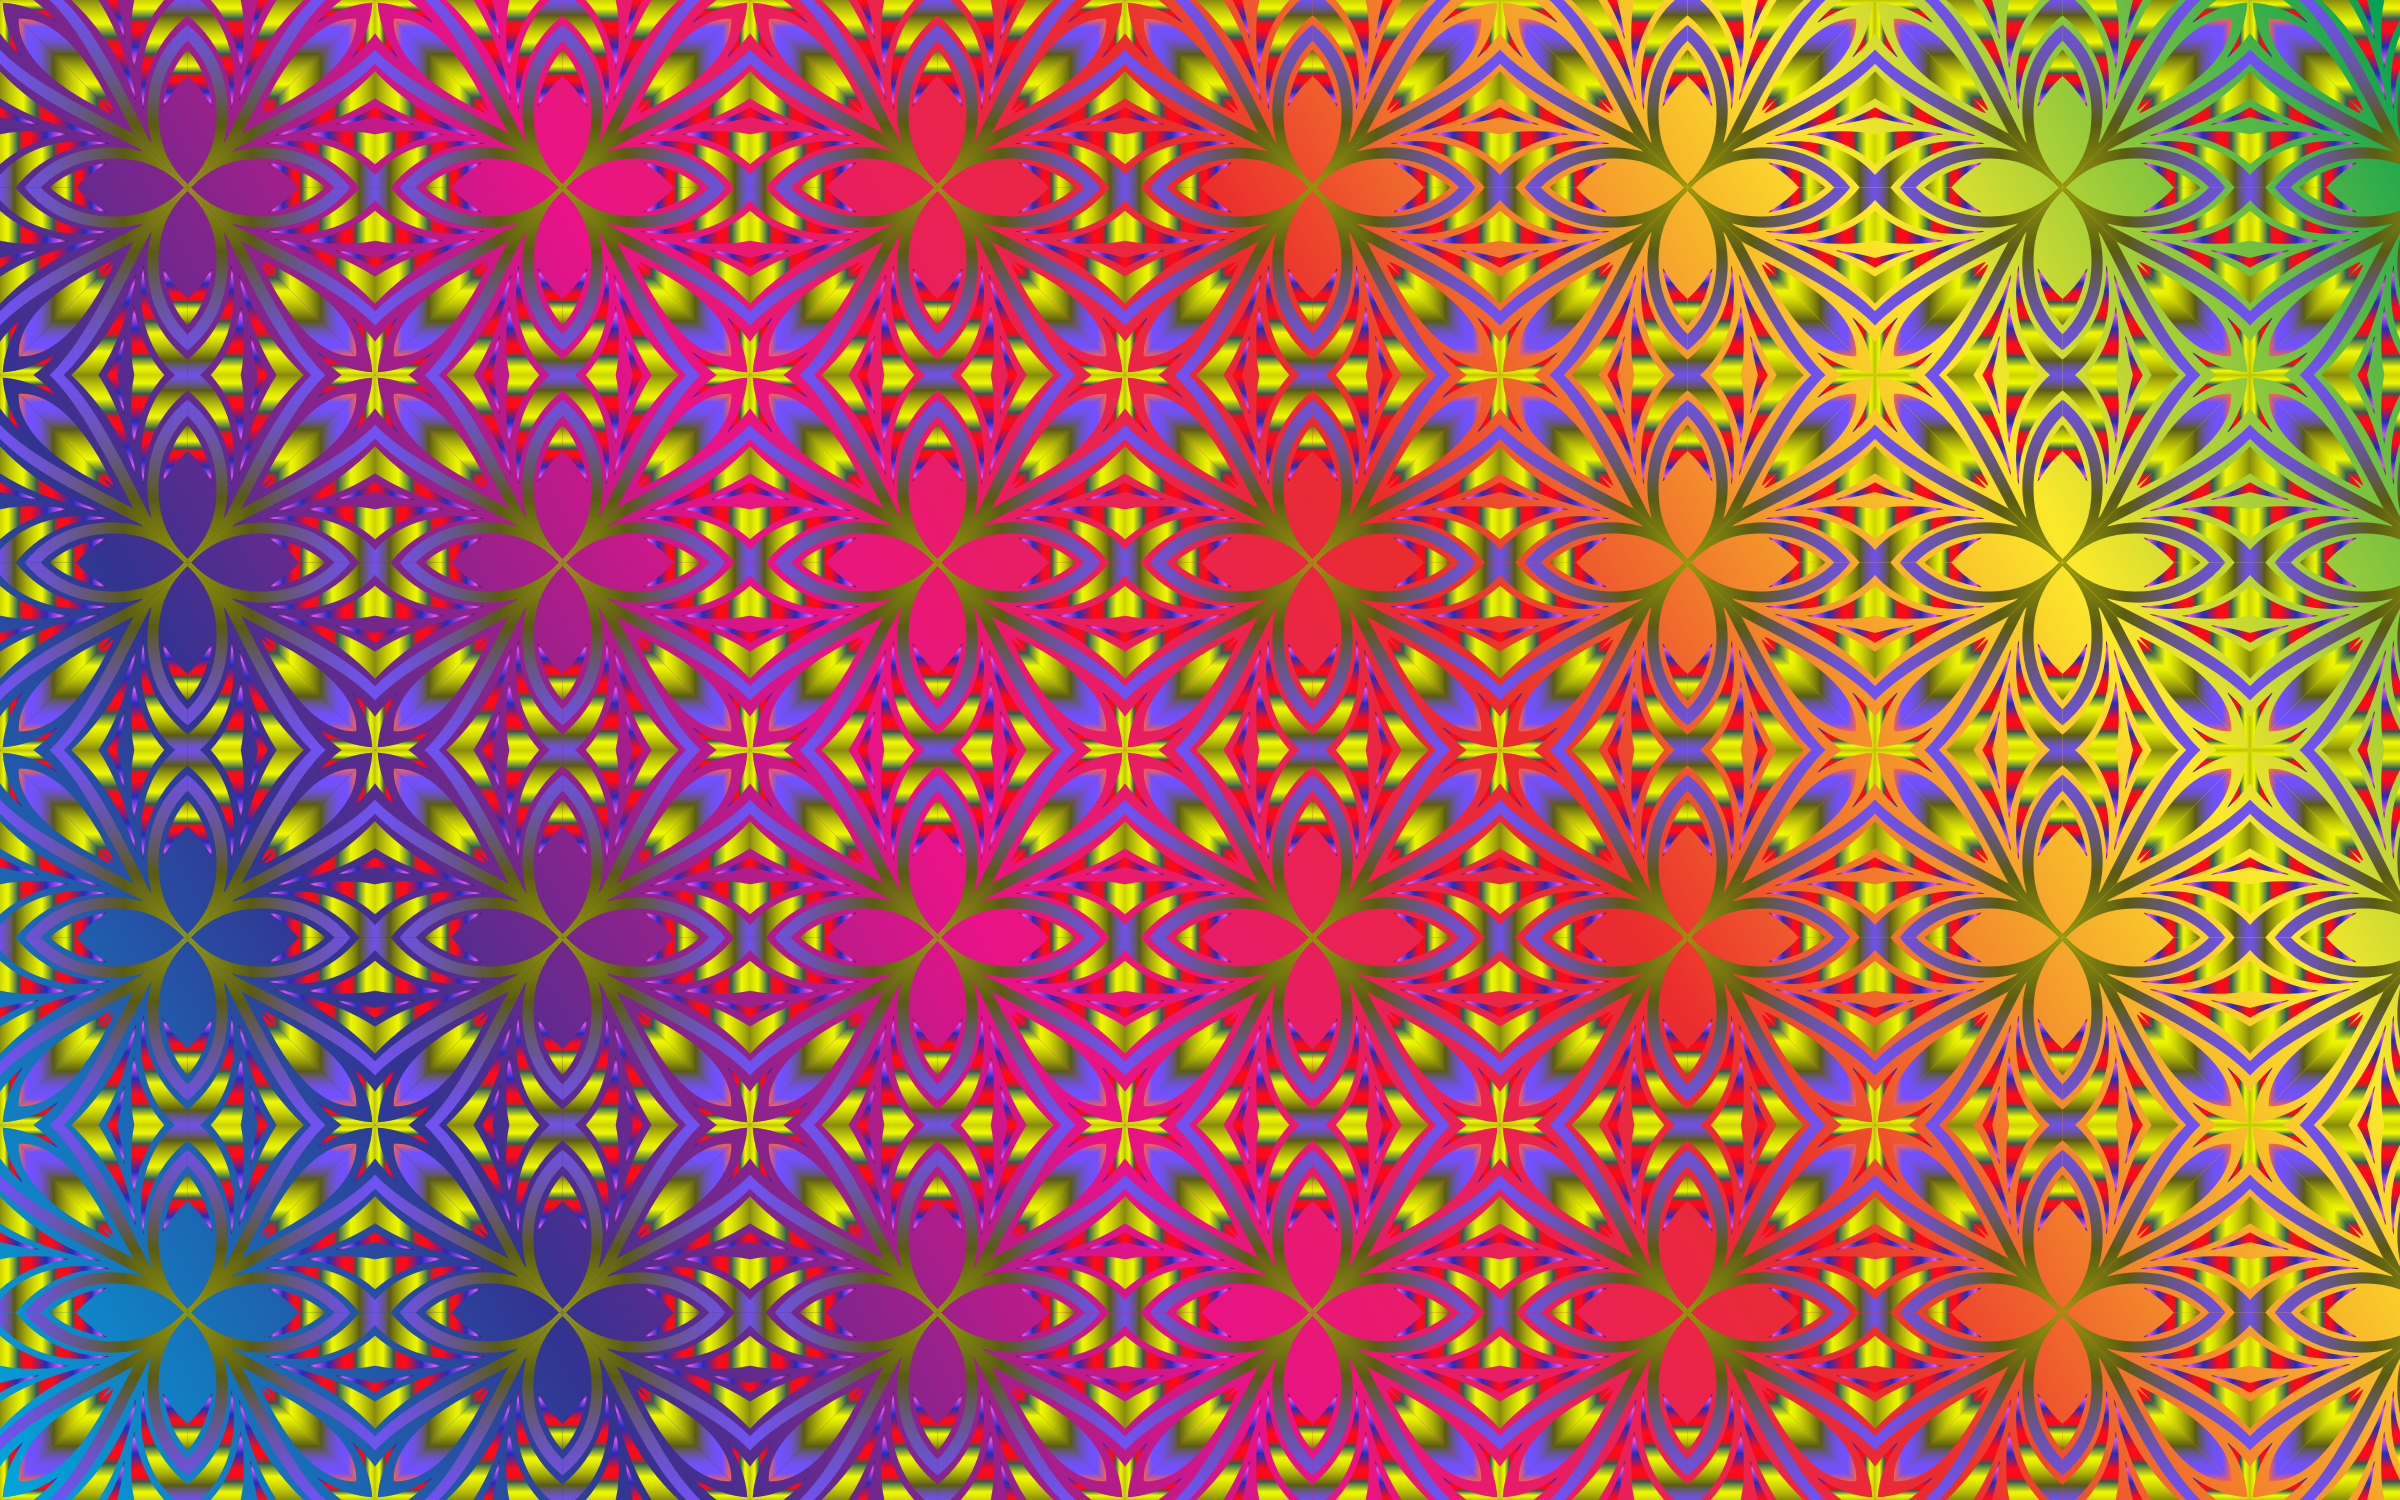 Psychedelic Wallpaper 2 by GDJ